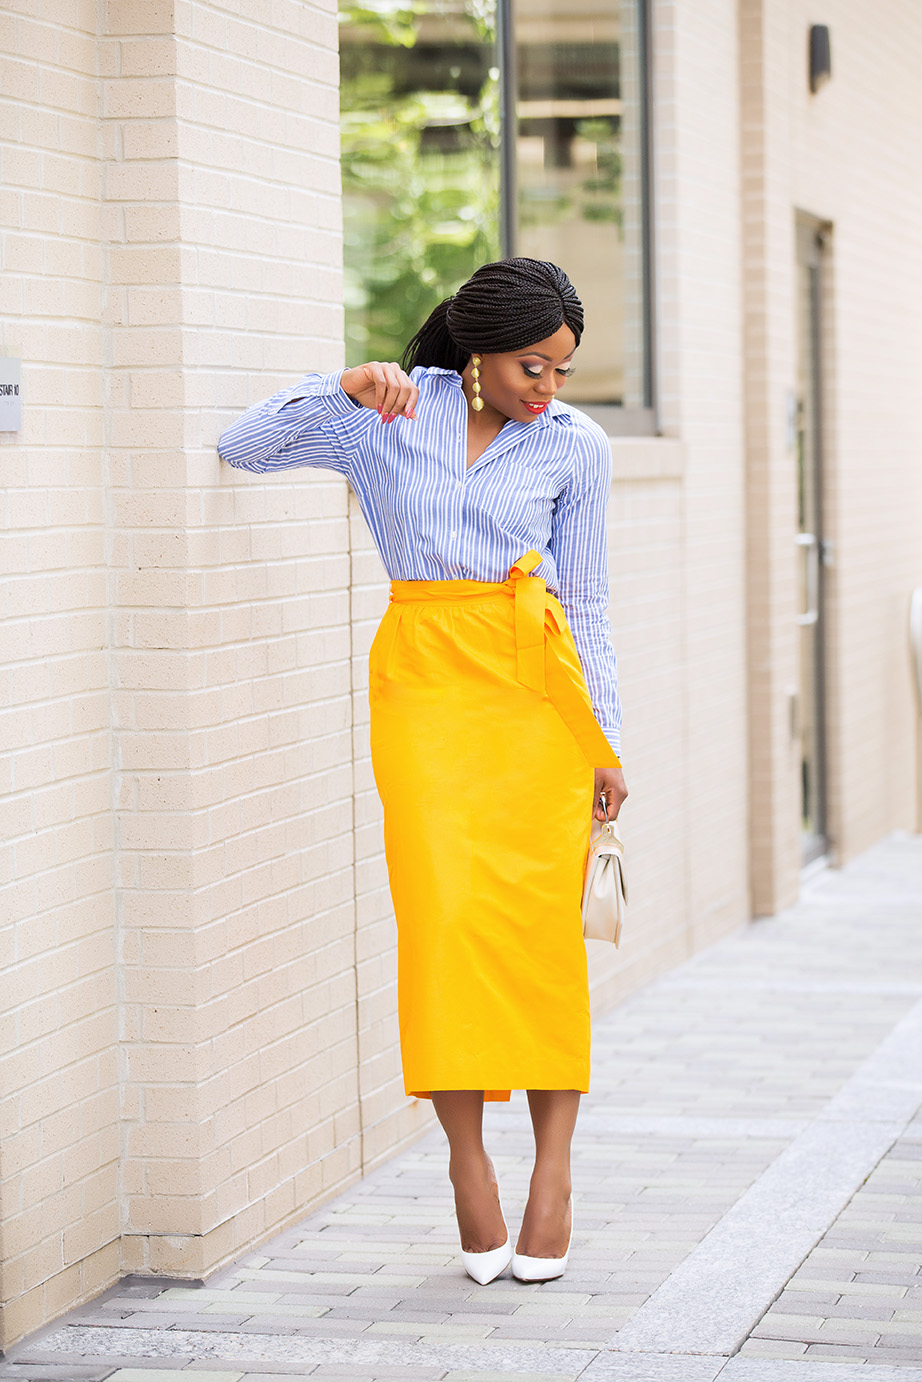 Summer work style, jcrew tie-waist skirt, www.jadore-fashion.com